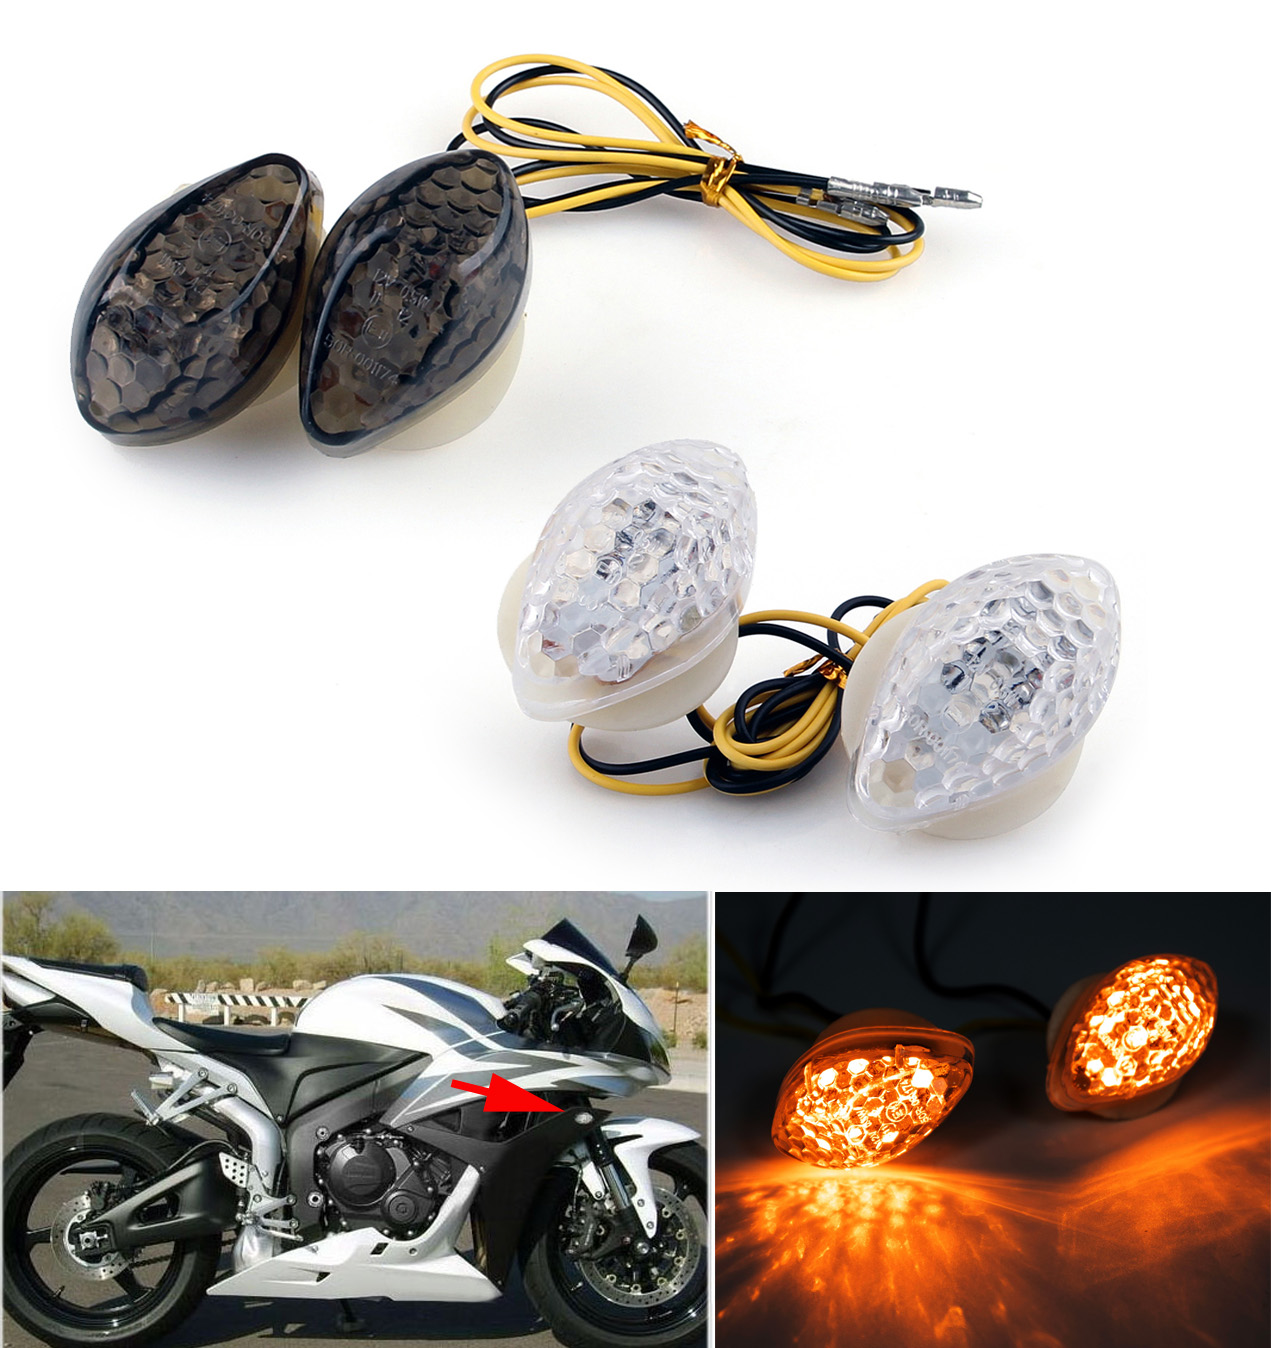 hight resolution of details about bright flush mount turn signals for honda cbr600 1000rr f4 i cbr900 929 954 ue